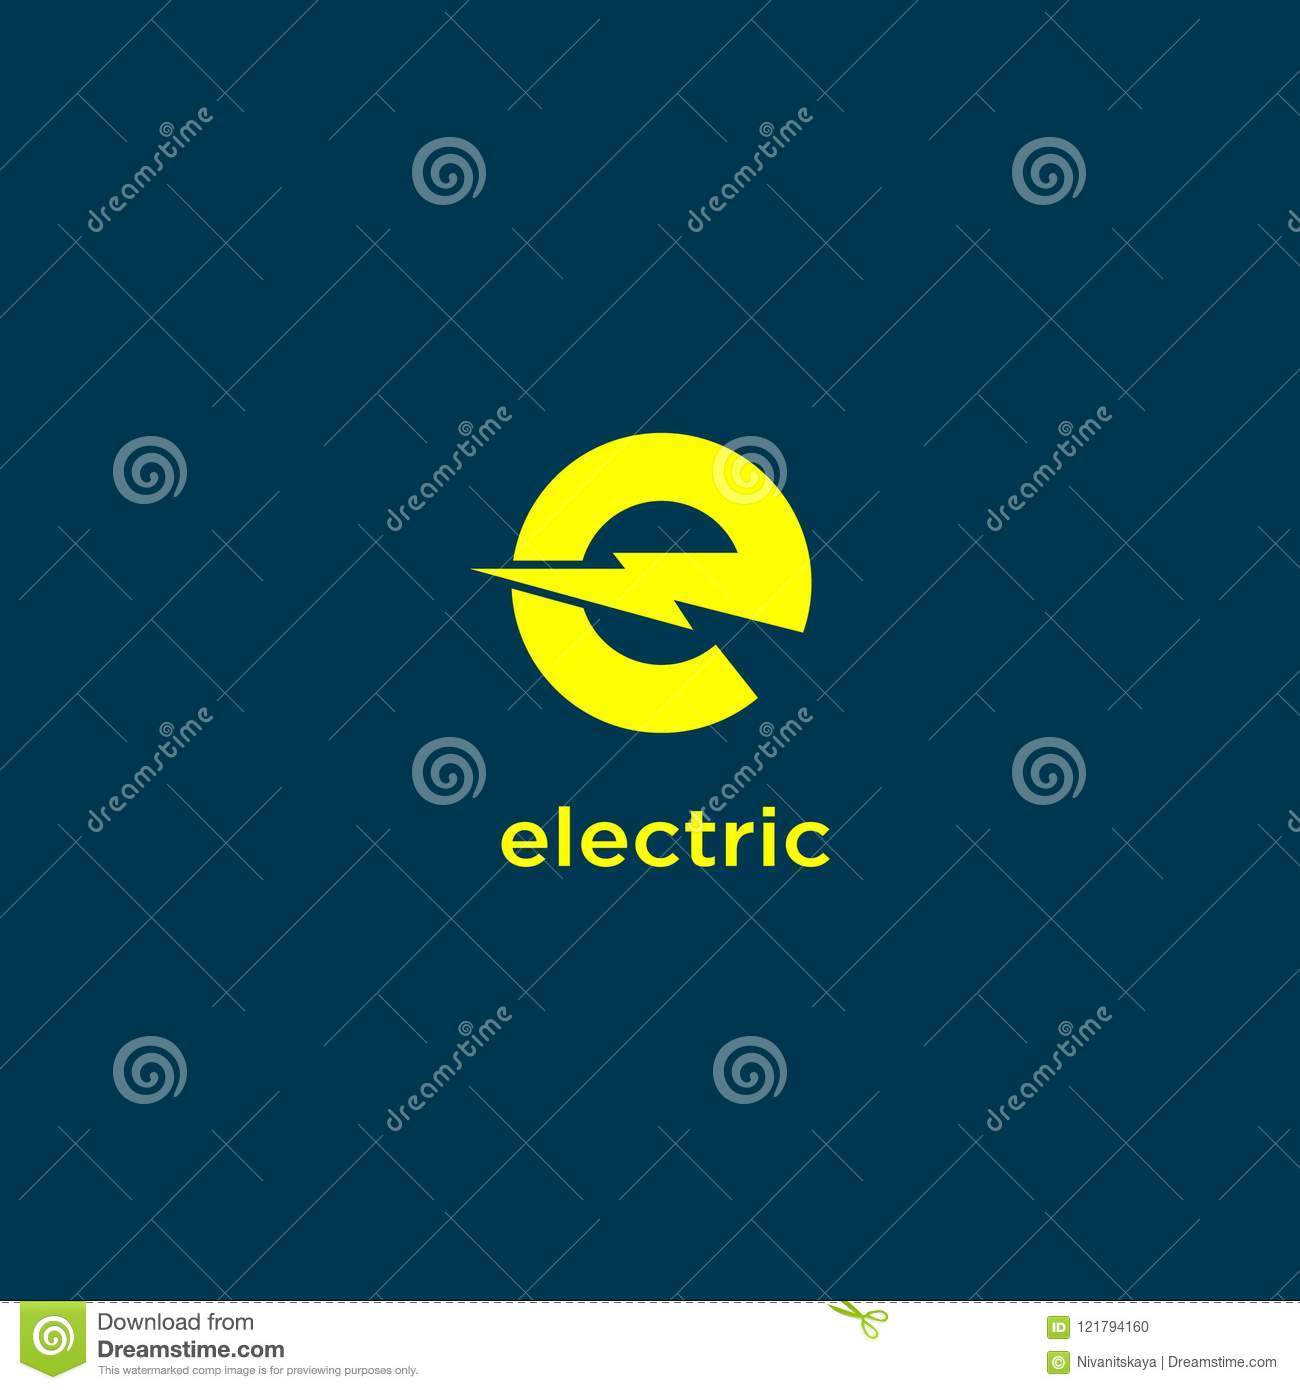 electric industrial power logo energy emblem yellow letter e with lightning stock vector illustration of abstract letter 121794160 https www dreamstime com electric industrial power logo energy emblem yellow letter e lightning electric industrial power logo energy emblem yellow image121794160